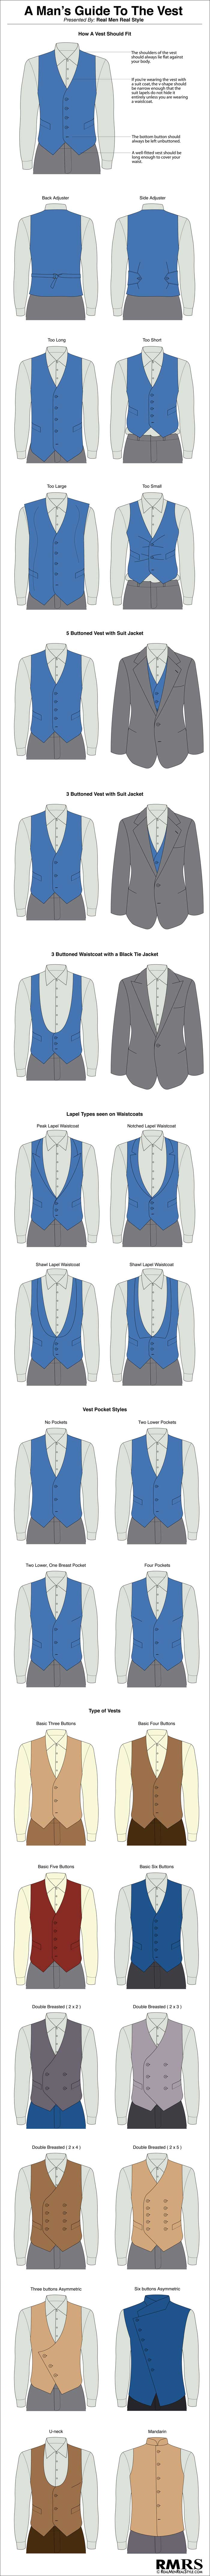 How To Wear Men's Vests - Infographic